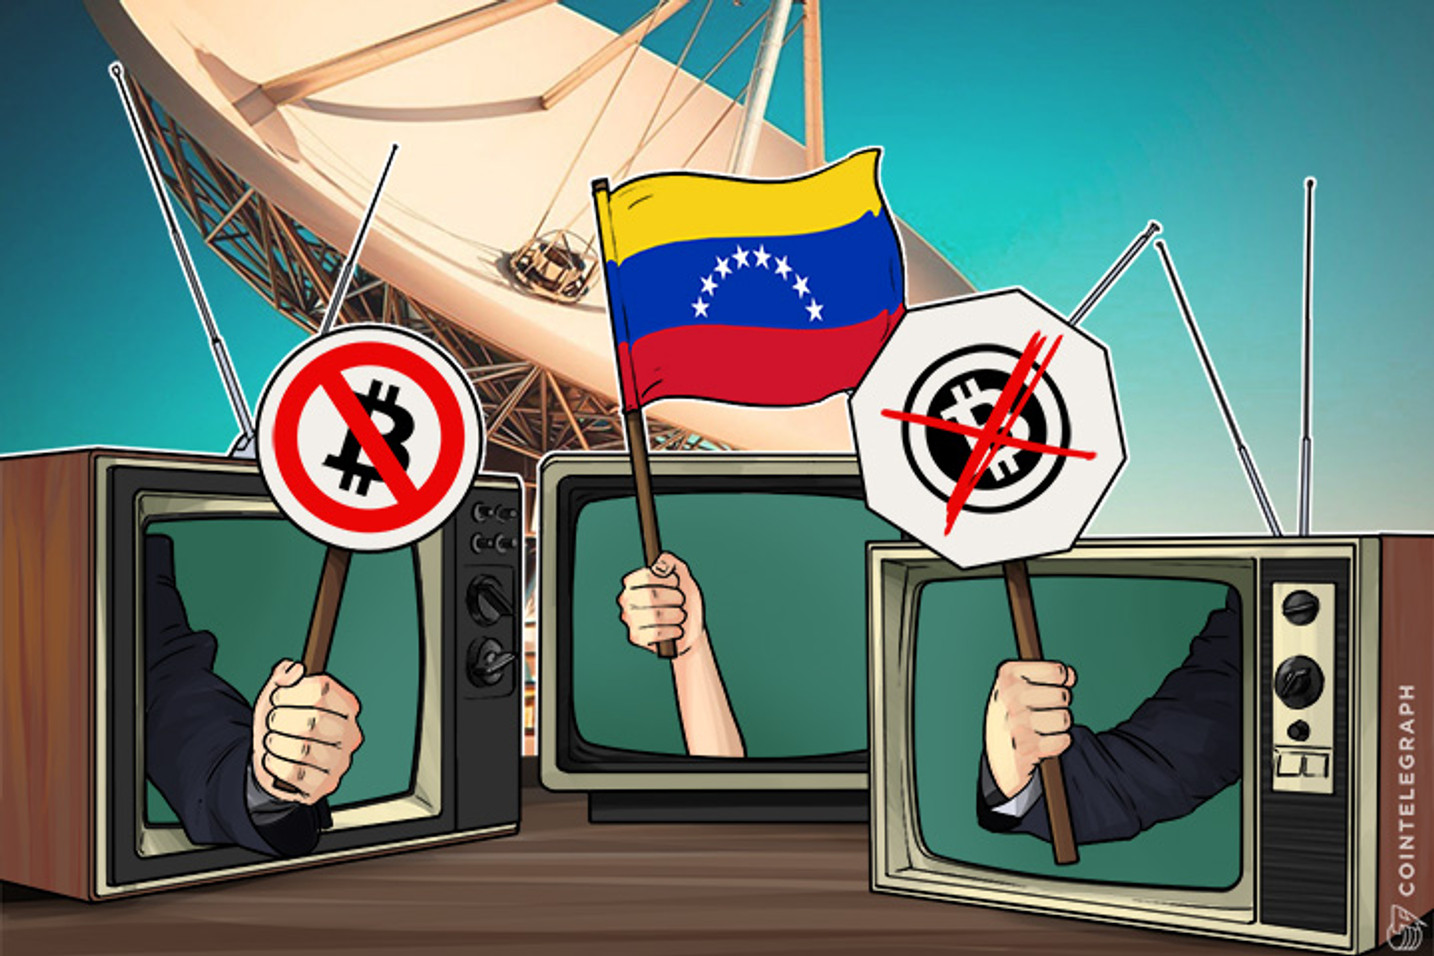 Venezuelan Government Launches Anti-Bitcoin Campaign